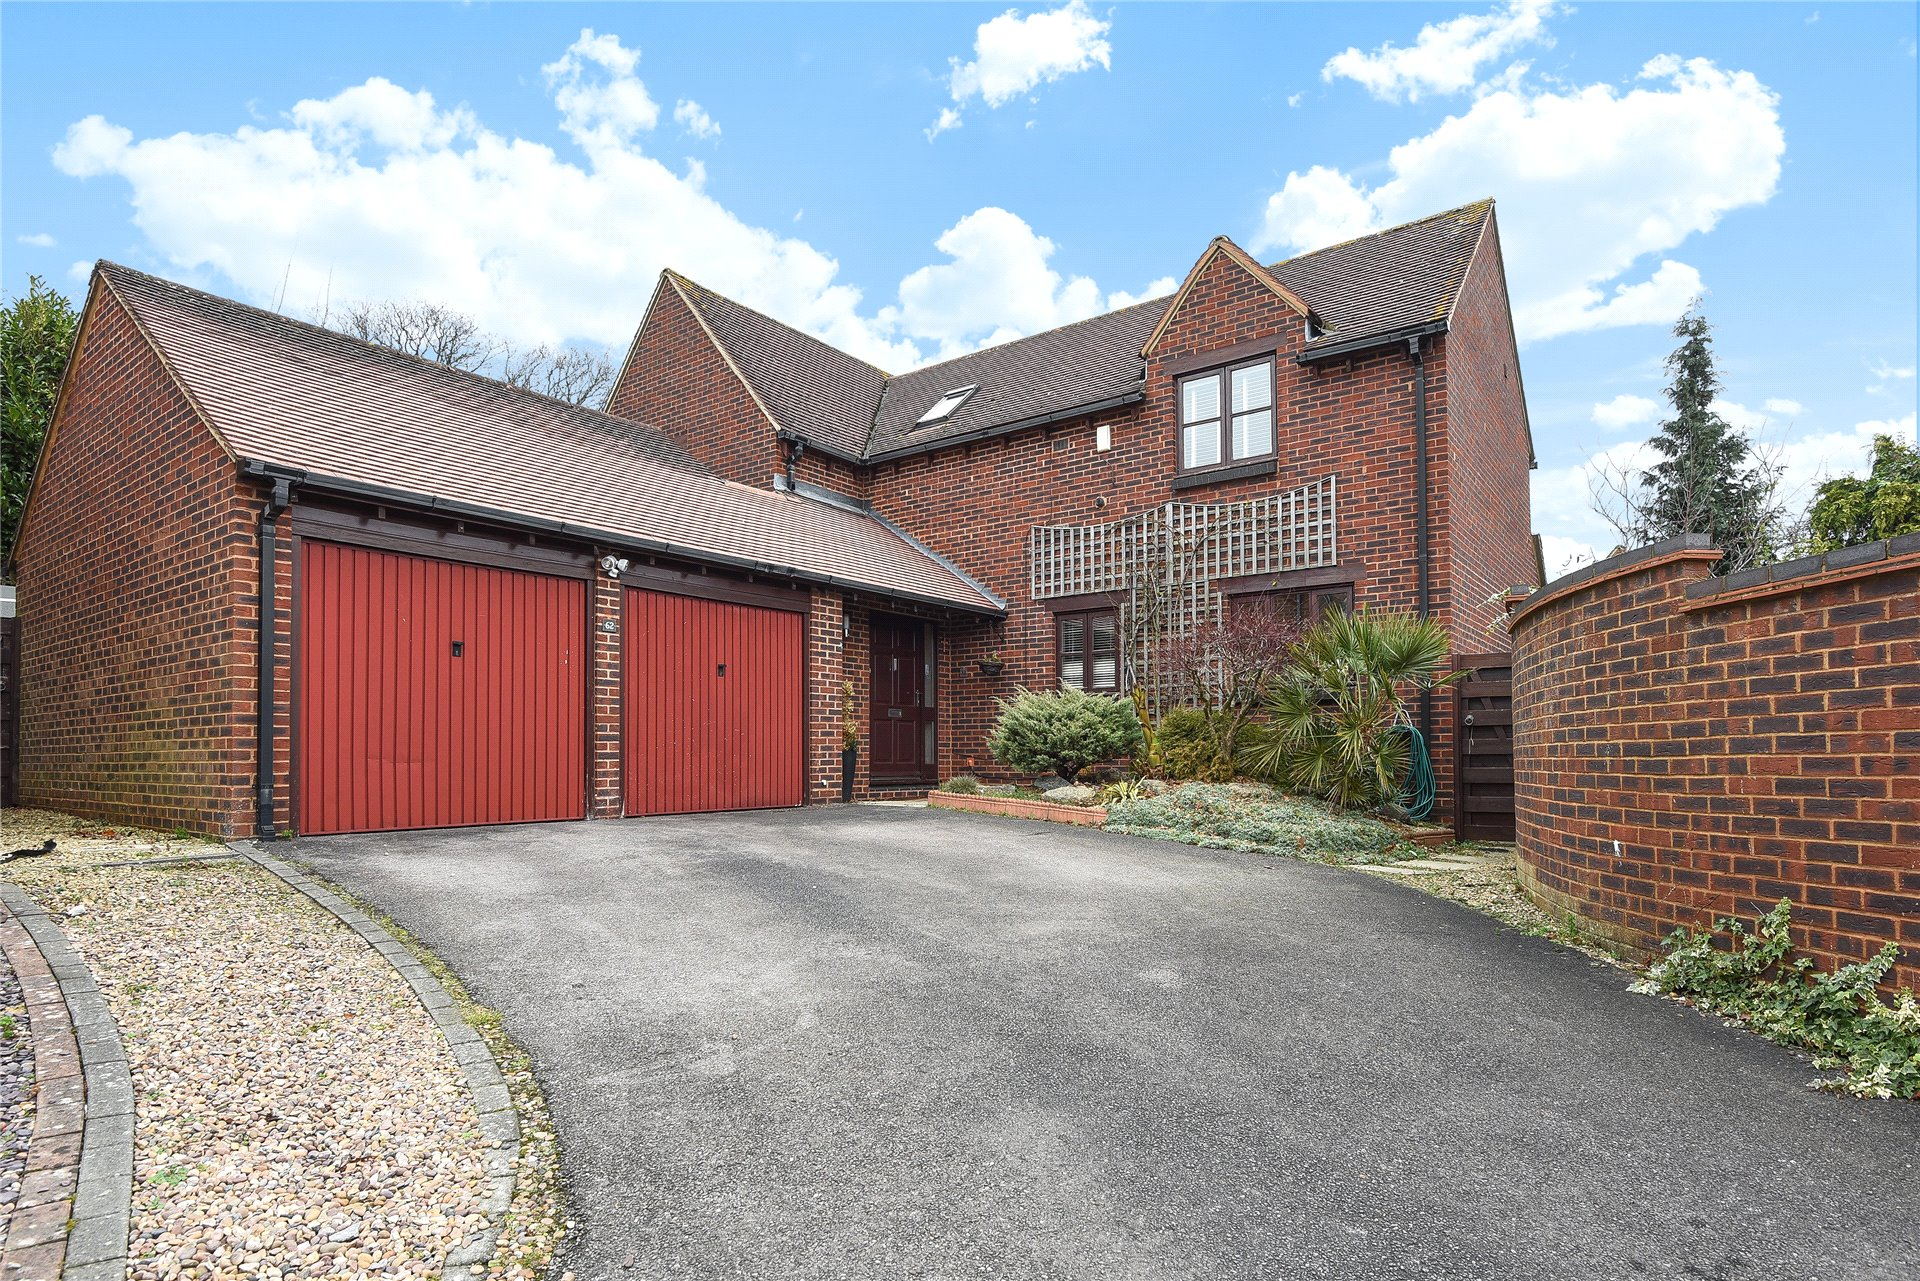 4 Bedrooms Detached House for sale in Top Common, Warfield, Berkshire, RG42